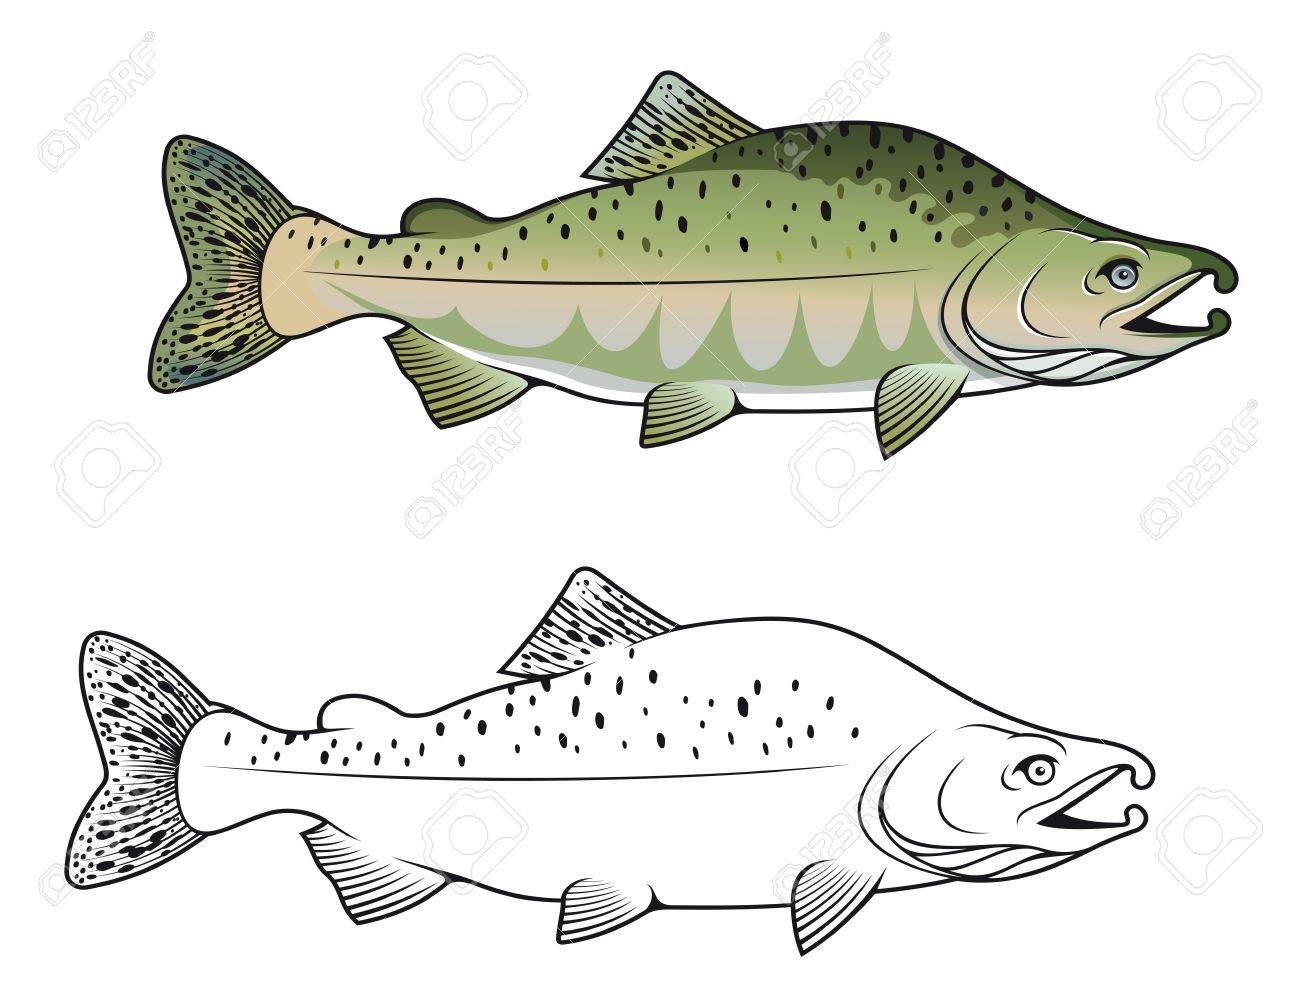 Hunchback salmon fish in color and monochrome versions Stock Vector - 14400027